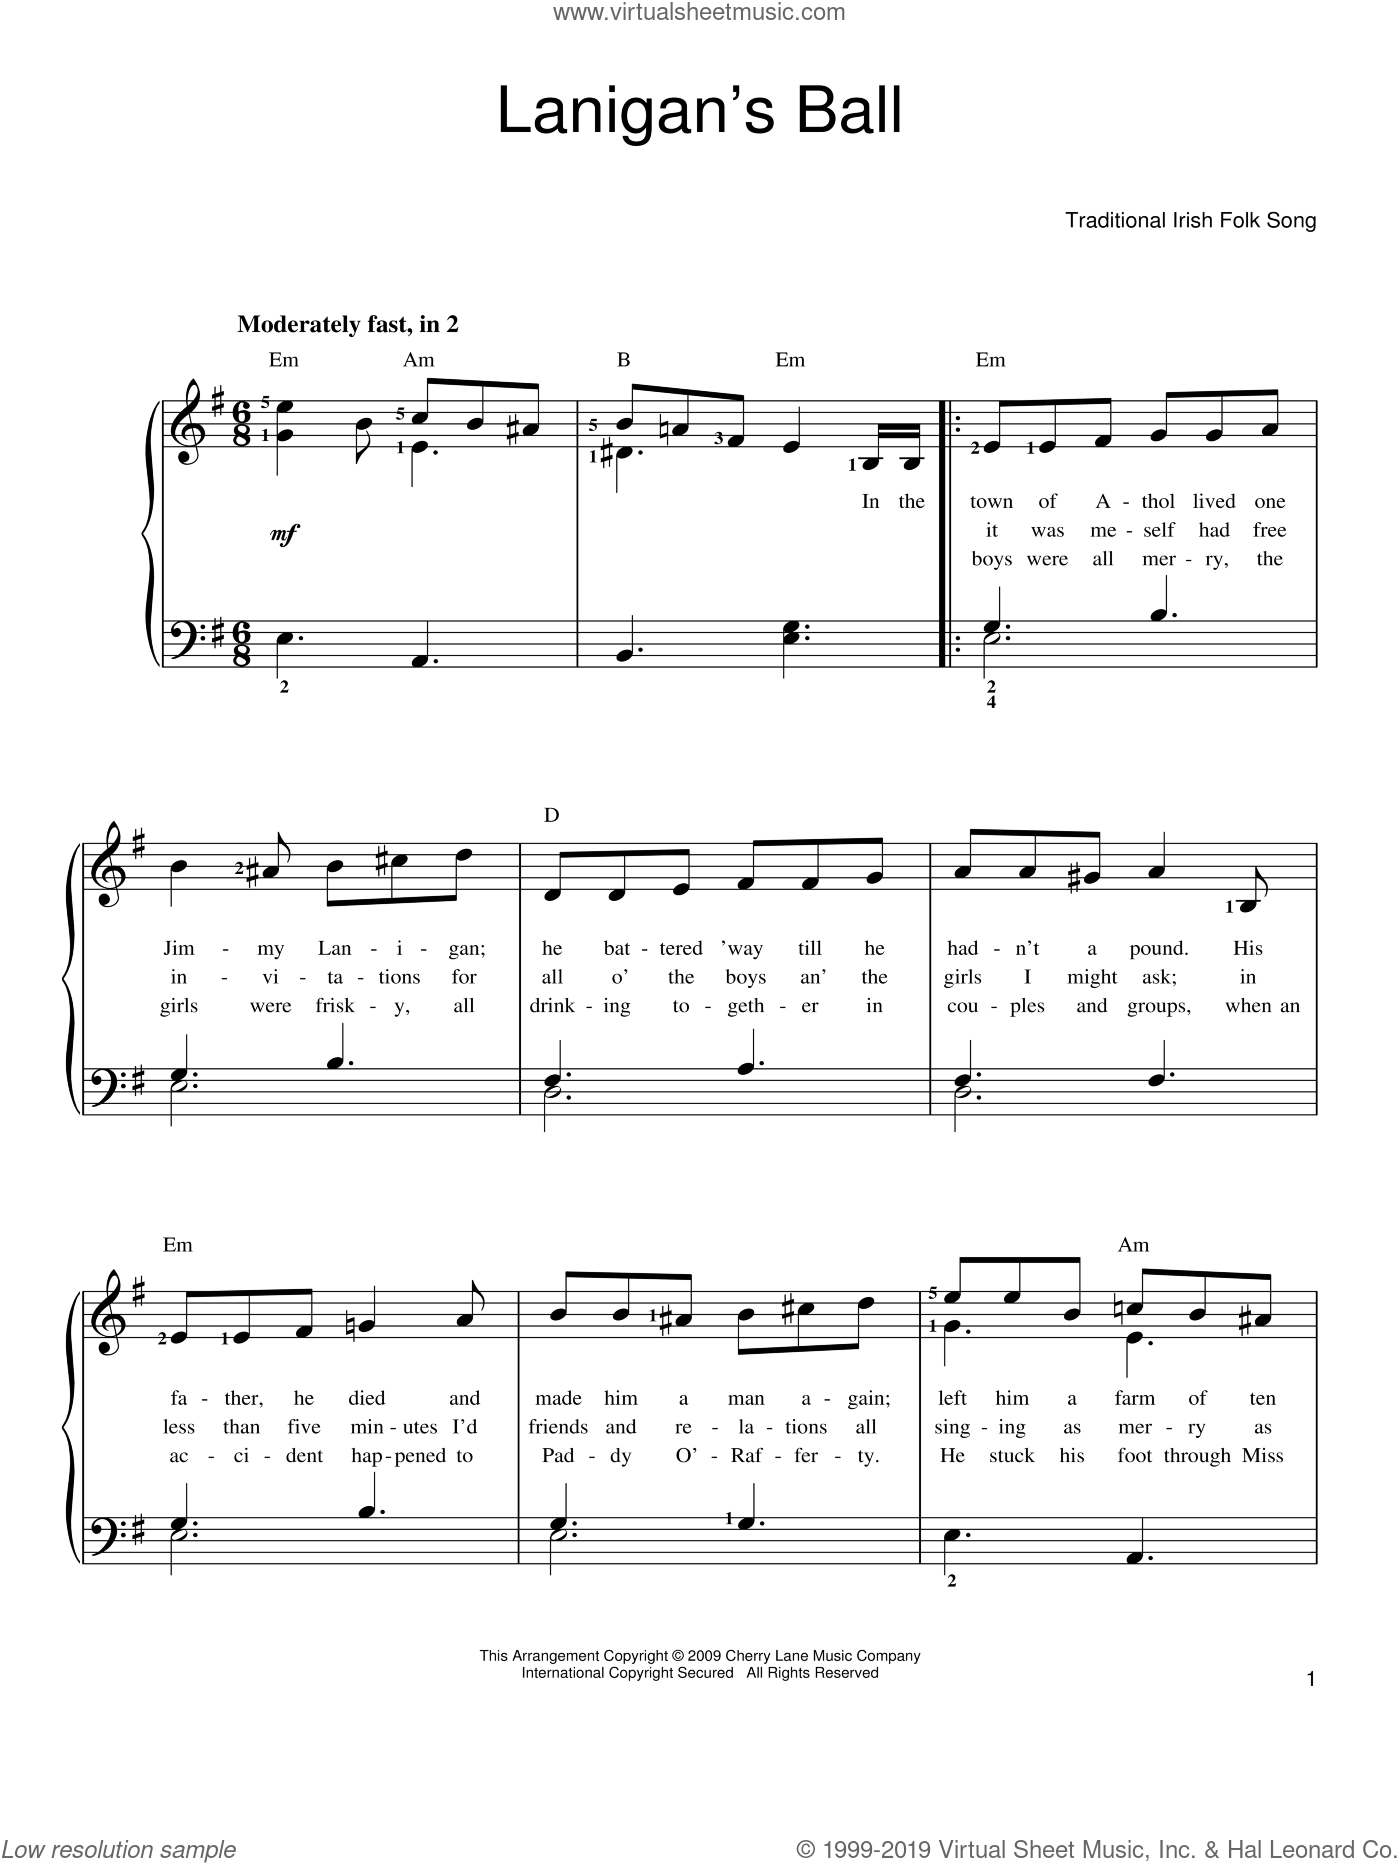 Lanigan's Ball sheet music for piano solo (chords)